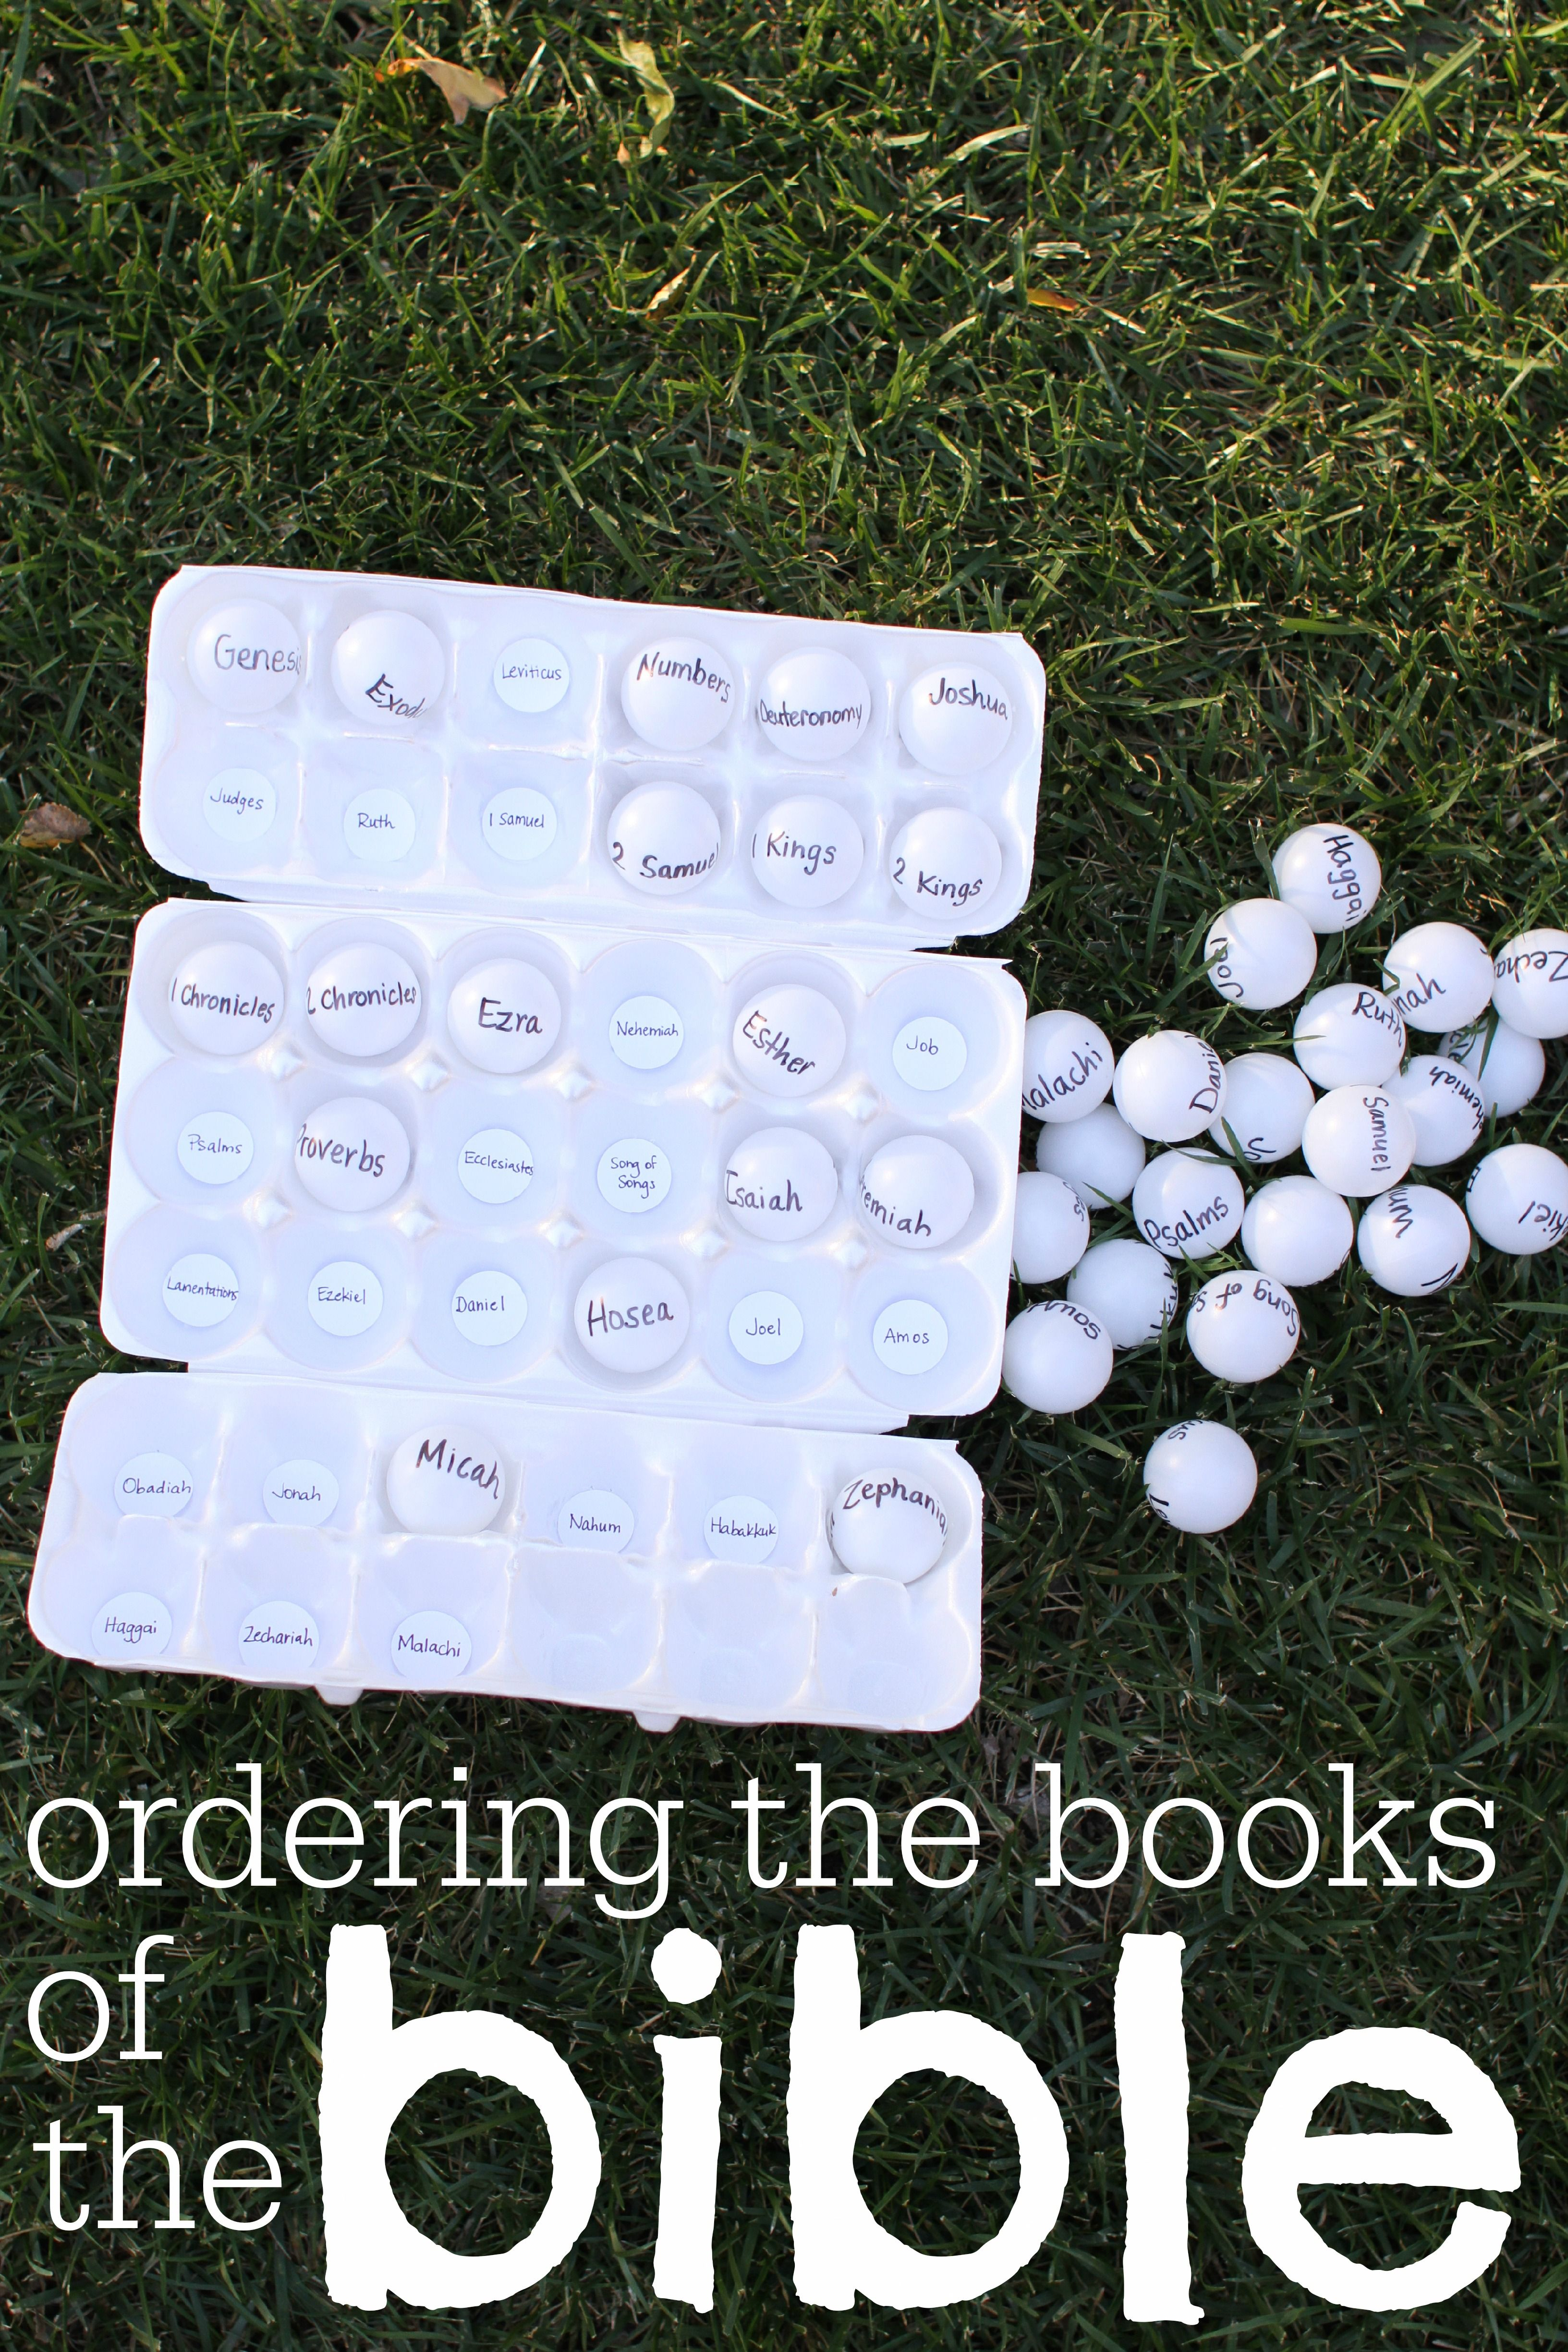 Ordering The Books Of The Bible With Ping Pong Balls